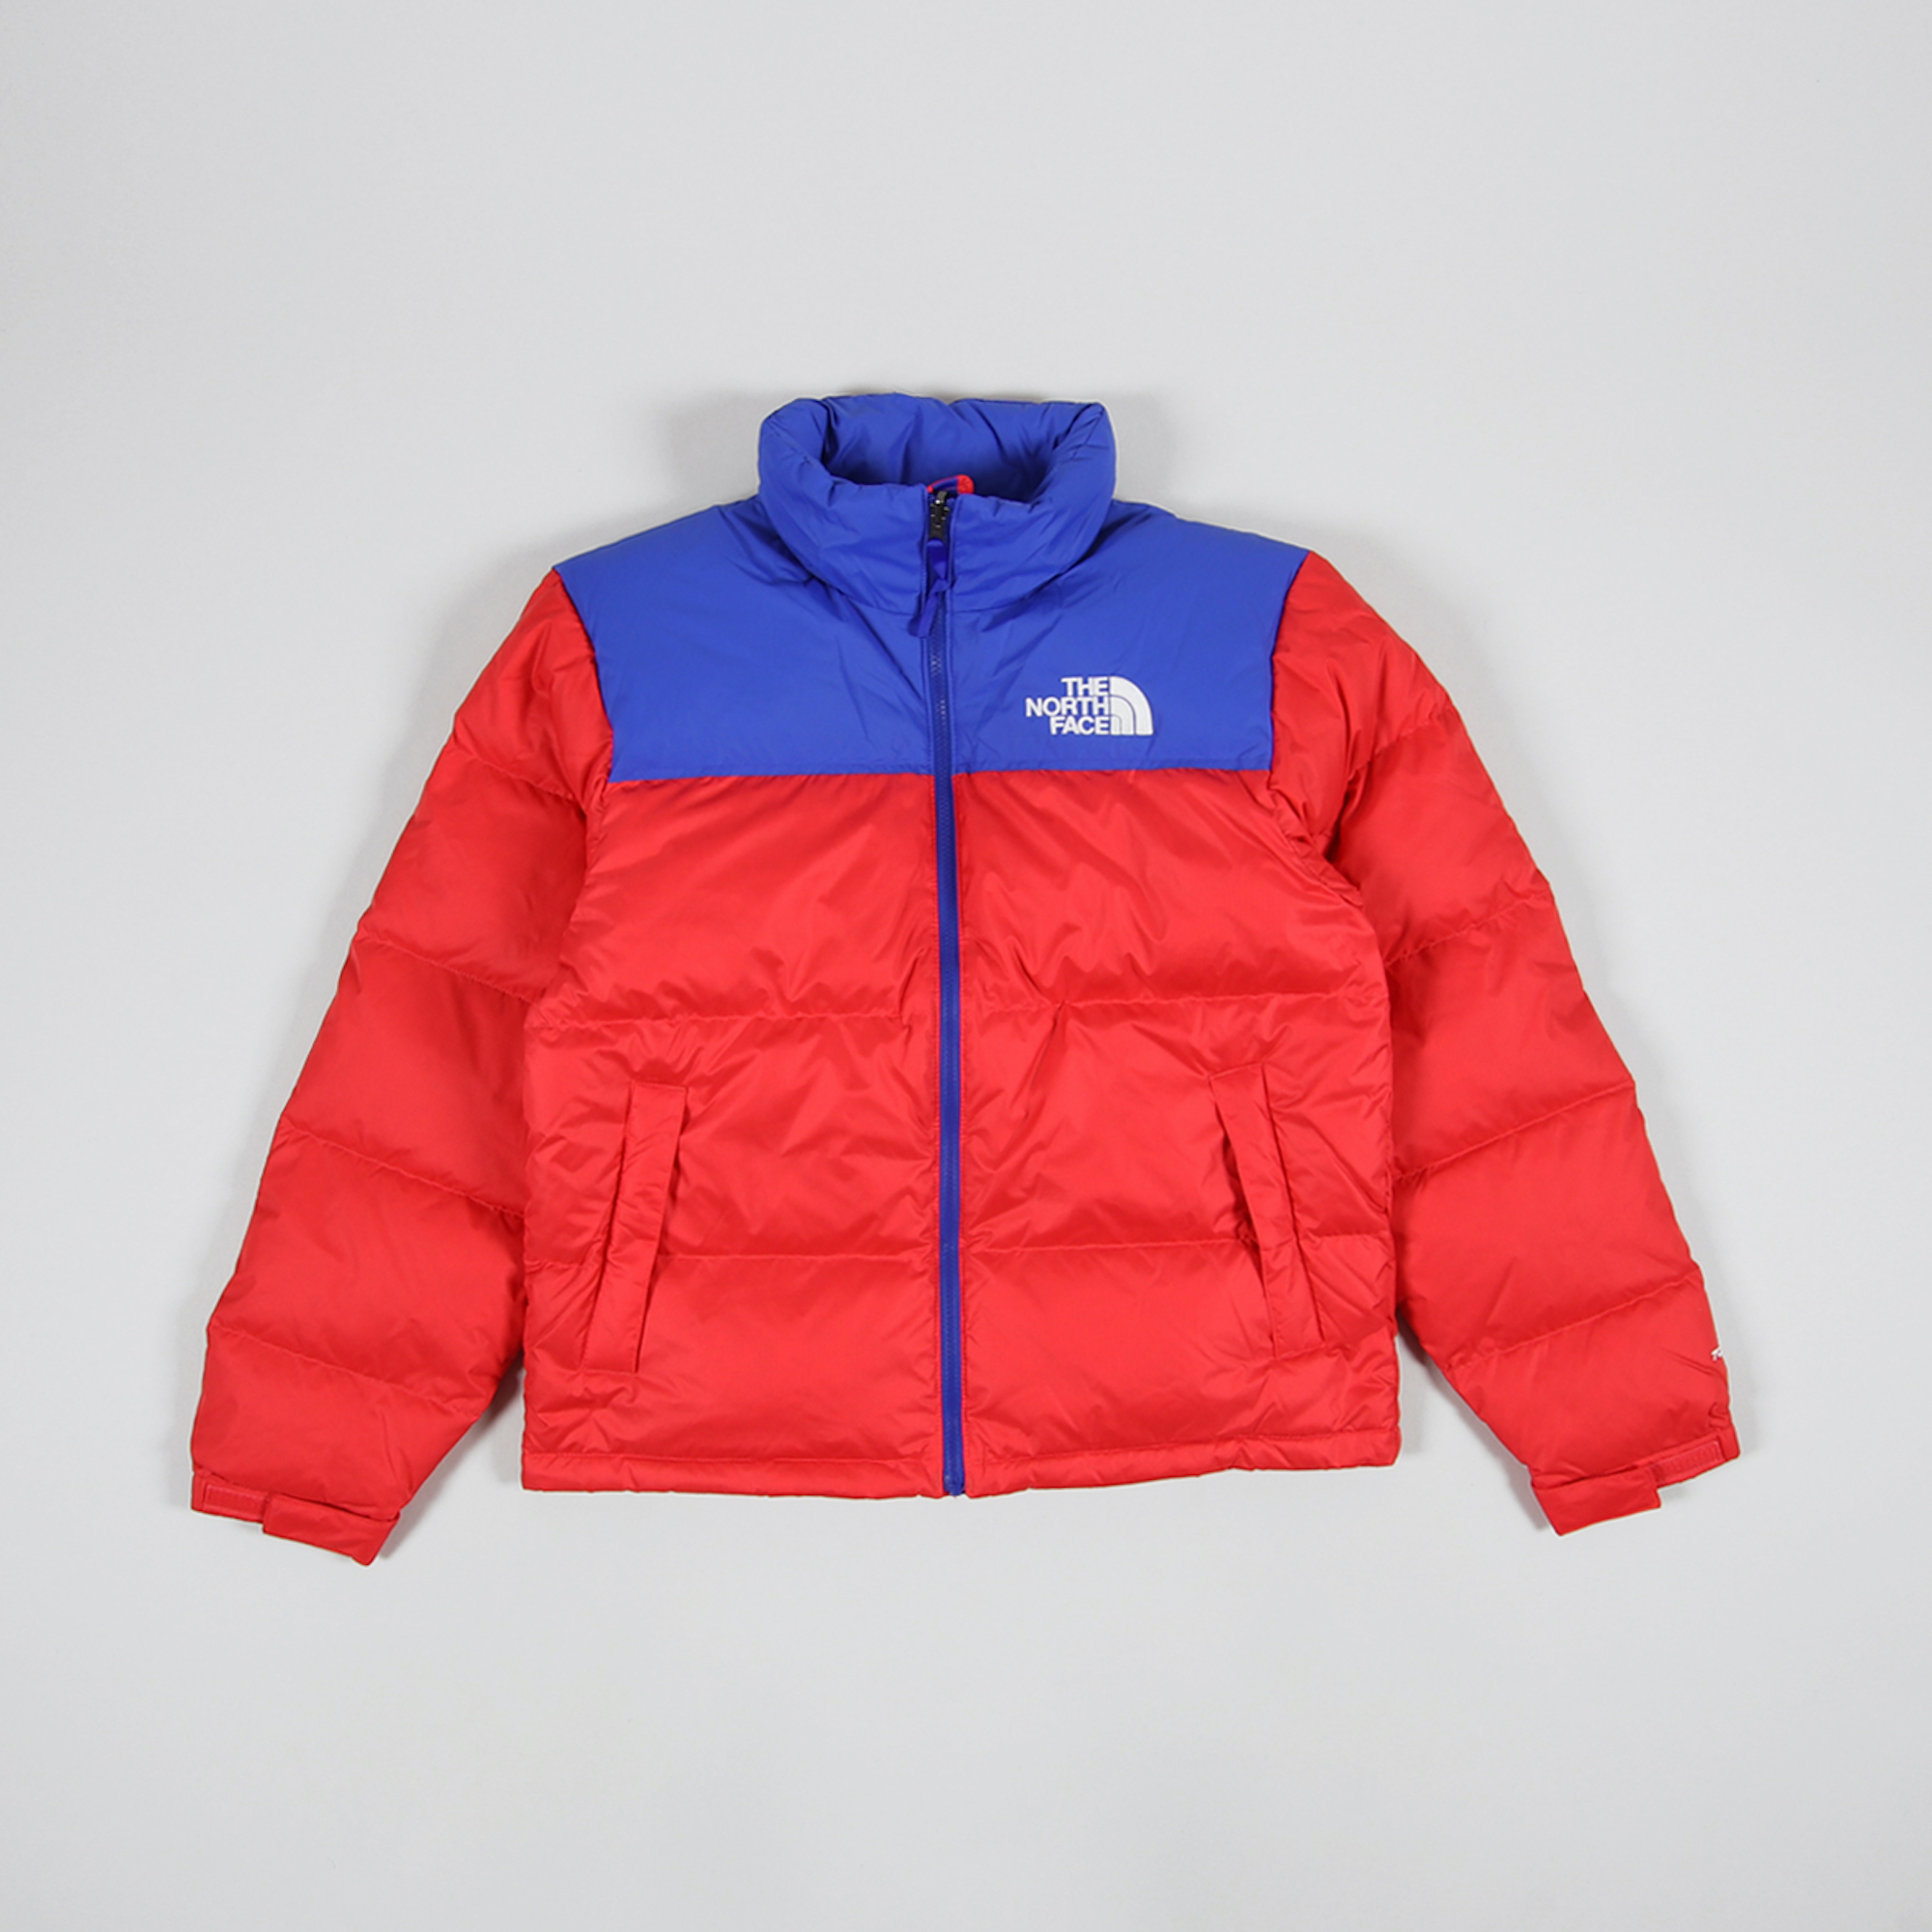 Red The North Face jacket